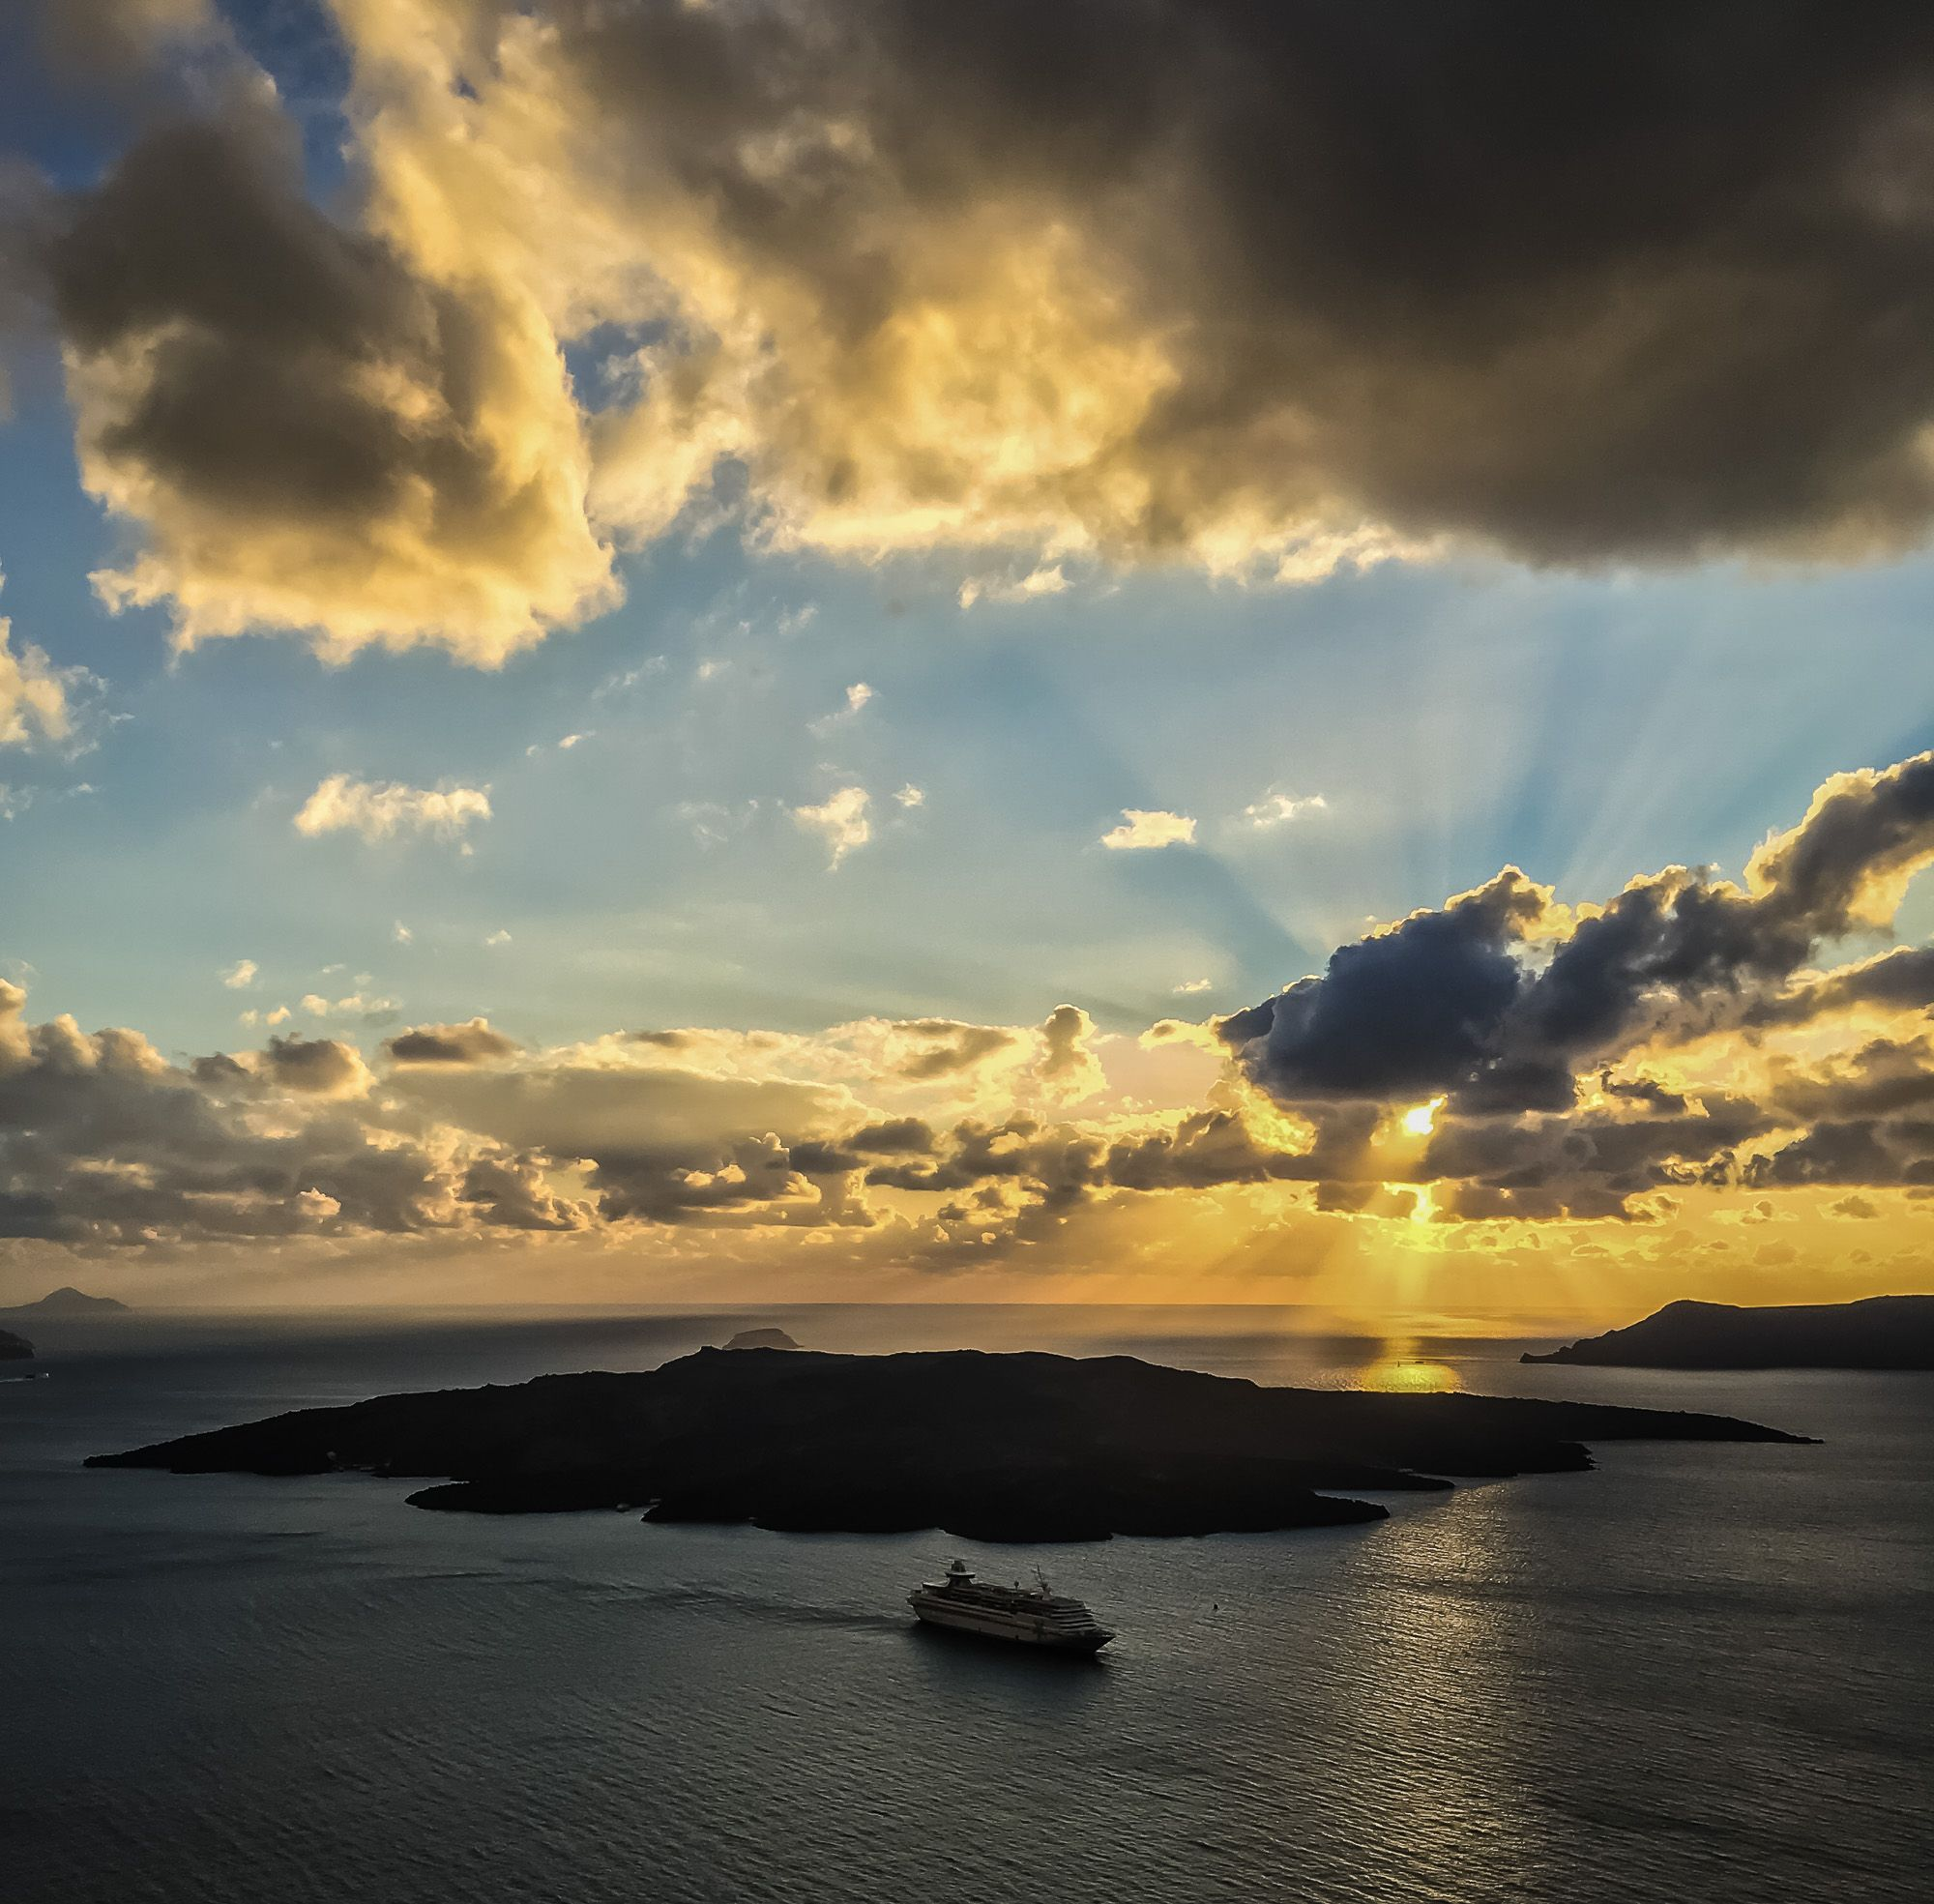 Time for another reminder of how spectacular the sunsets can be on Santorini...